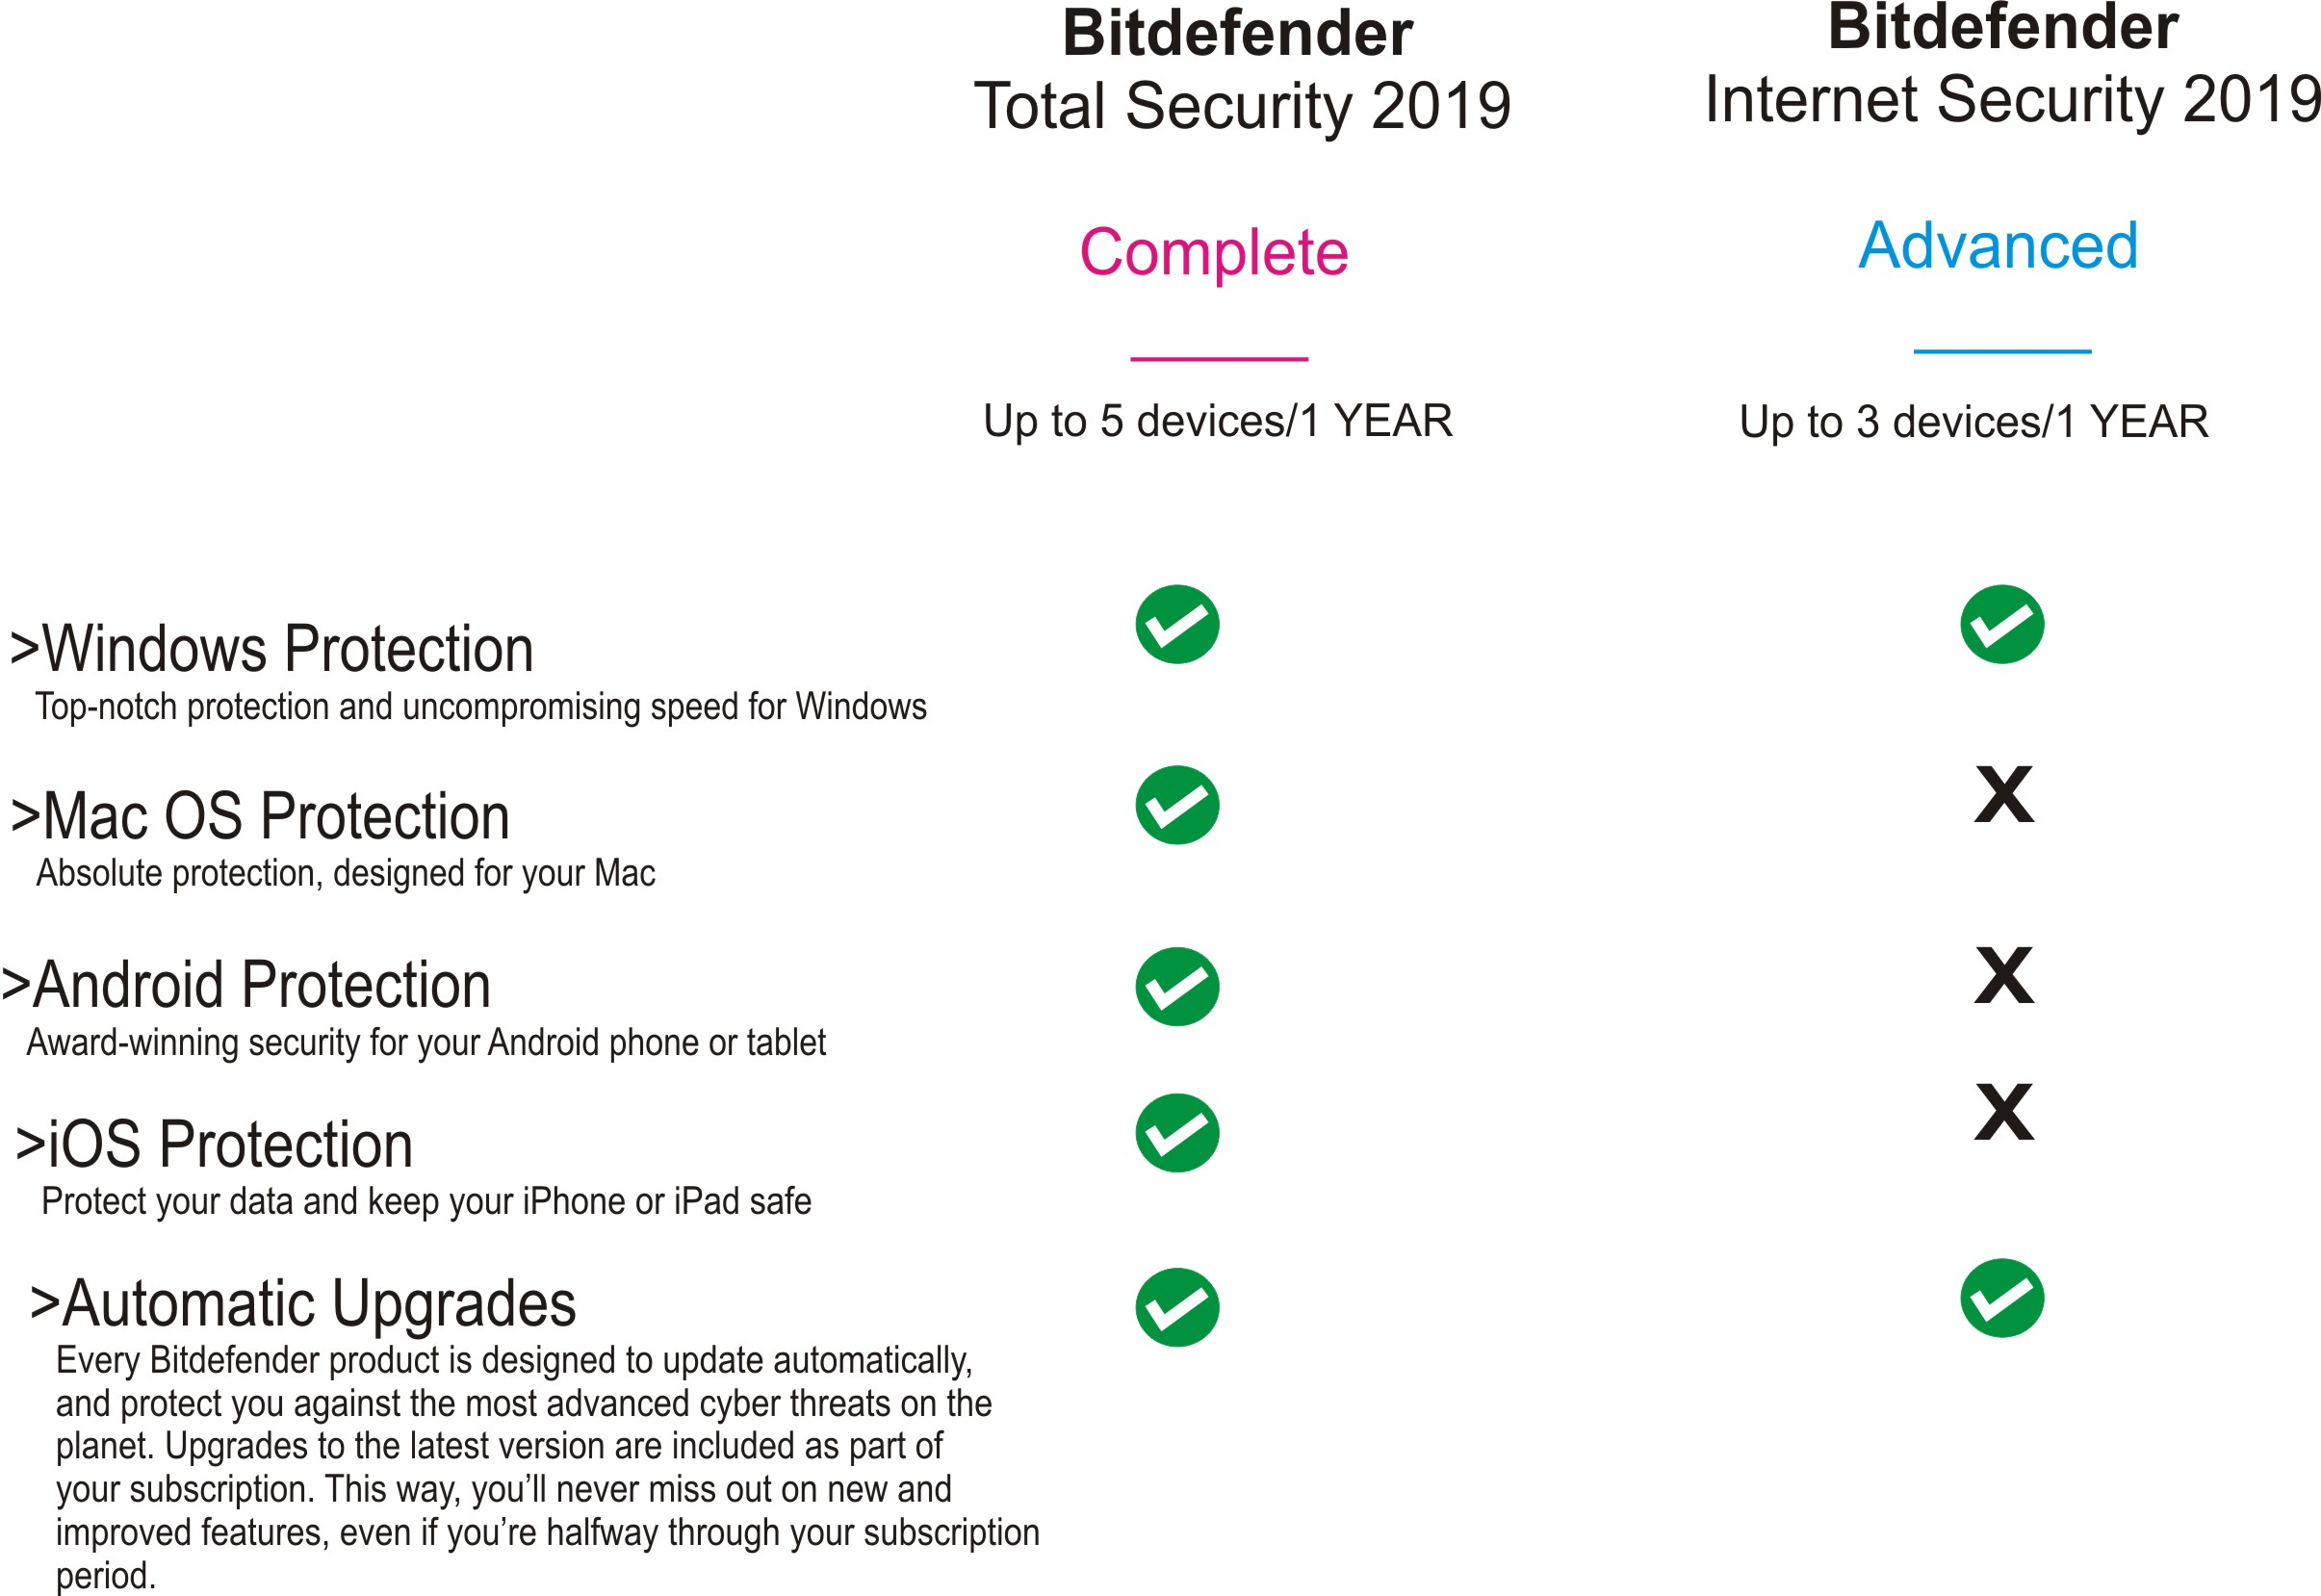 A Comparison Between Two Versions of the Same Antivirus